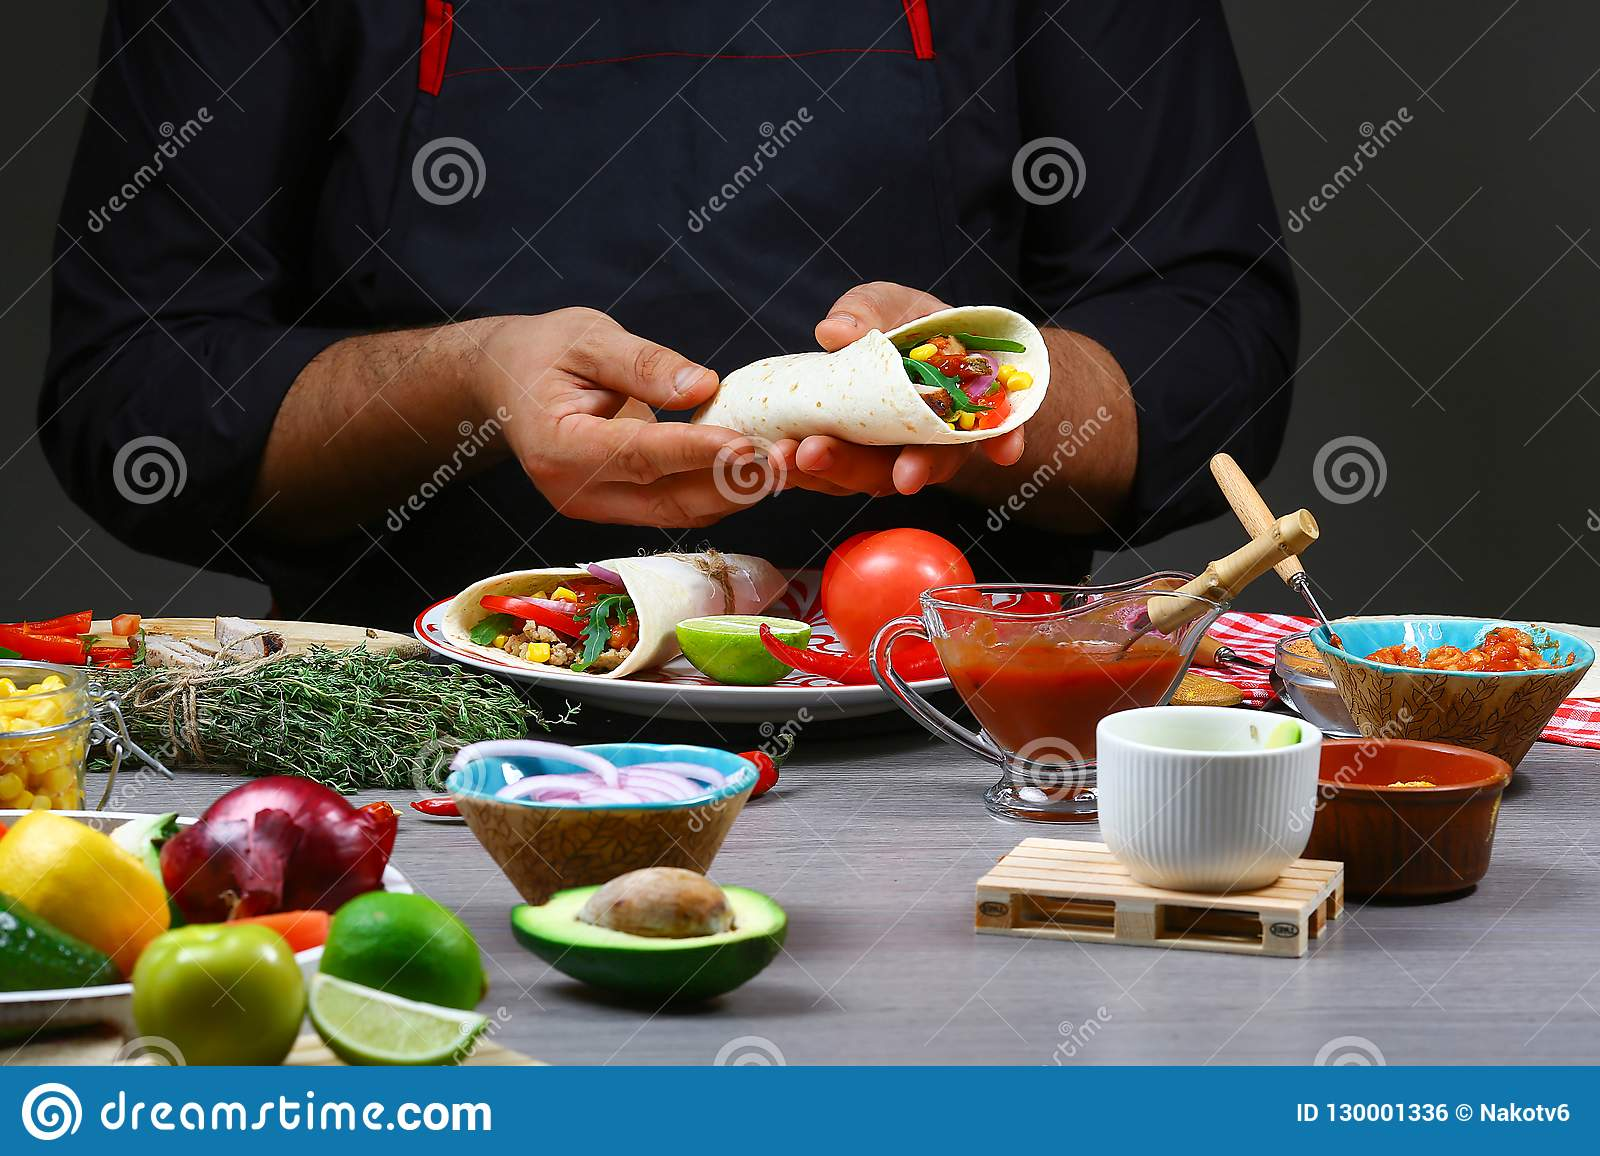 Male street vendor hands making taco. Mexican cuisine snacks, cooking fast food for commercial kitchen